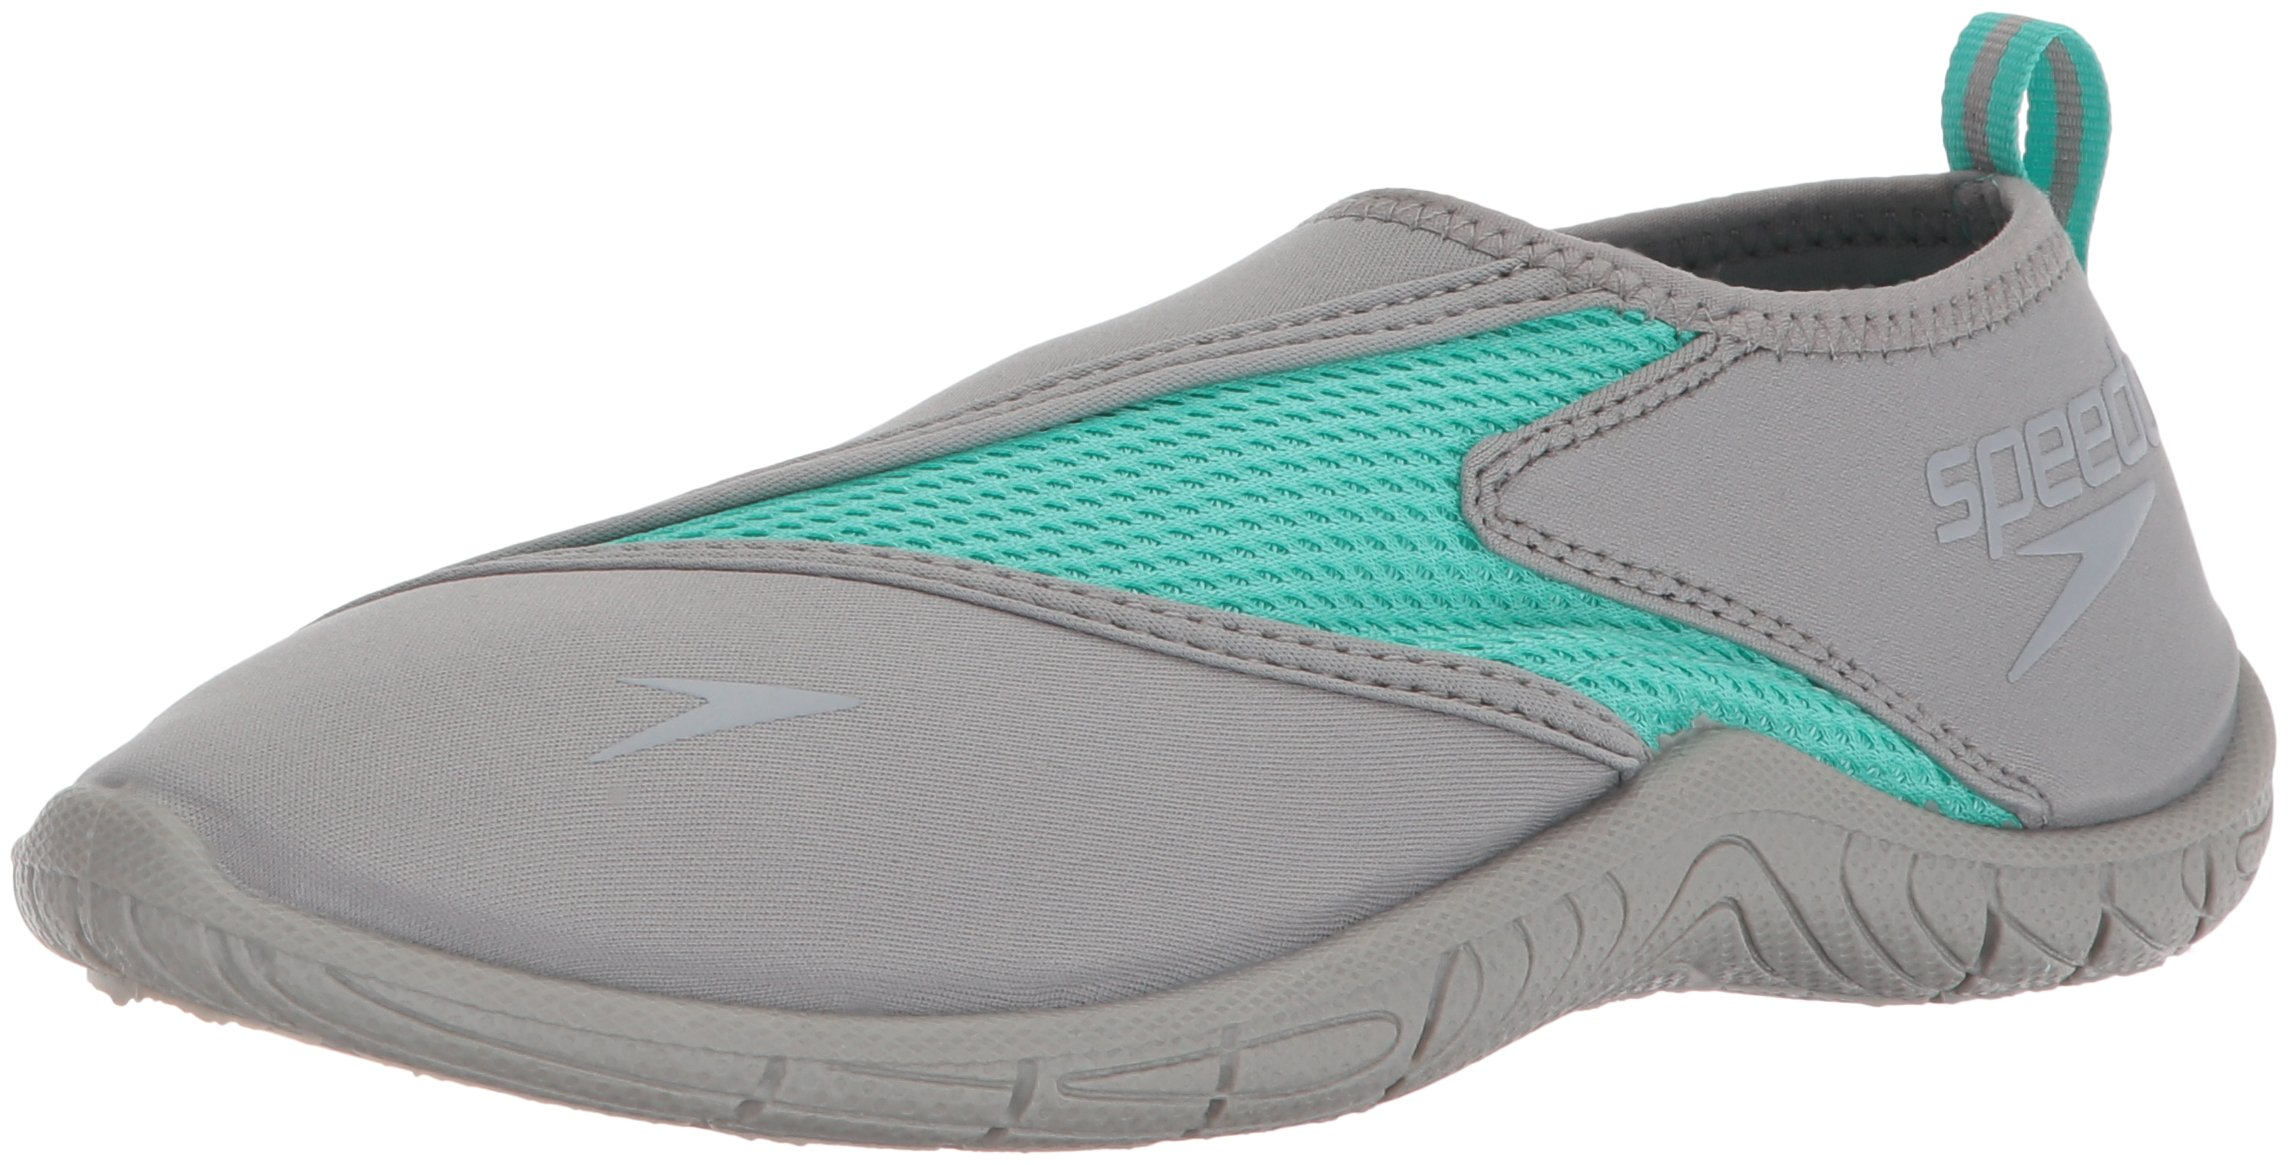 d27e19fa2d9a Speedo Women s Surfwalker 3.0 Water Shoe Frost Grey 8 B(M) US New ...